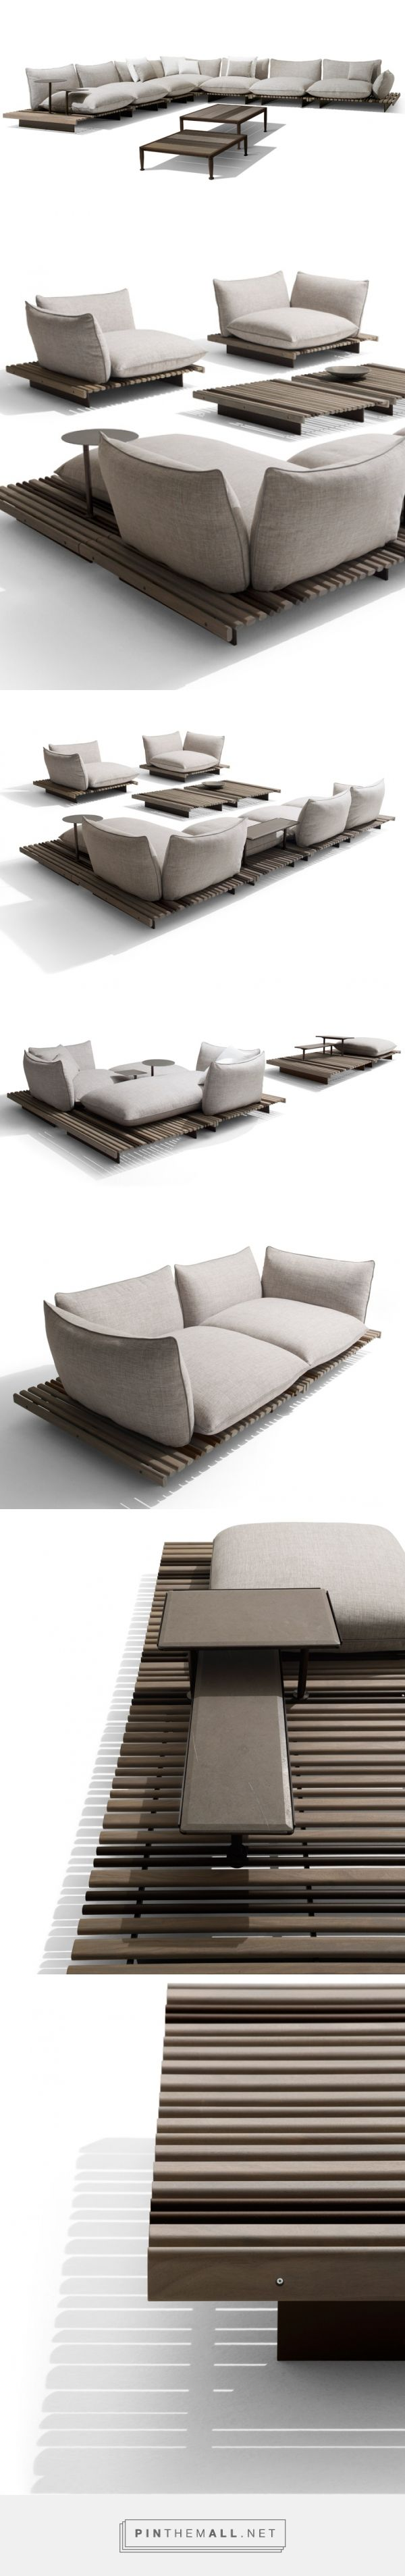 luxury outdoor furniture skyline design imagine. Ludovica And Roberto Palomba Aspara Sofa For Giorgetti - Created Via Https://pinthemall Luxury Outdoor Furniture Skyline Design Imagine